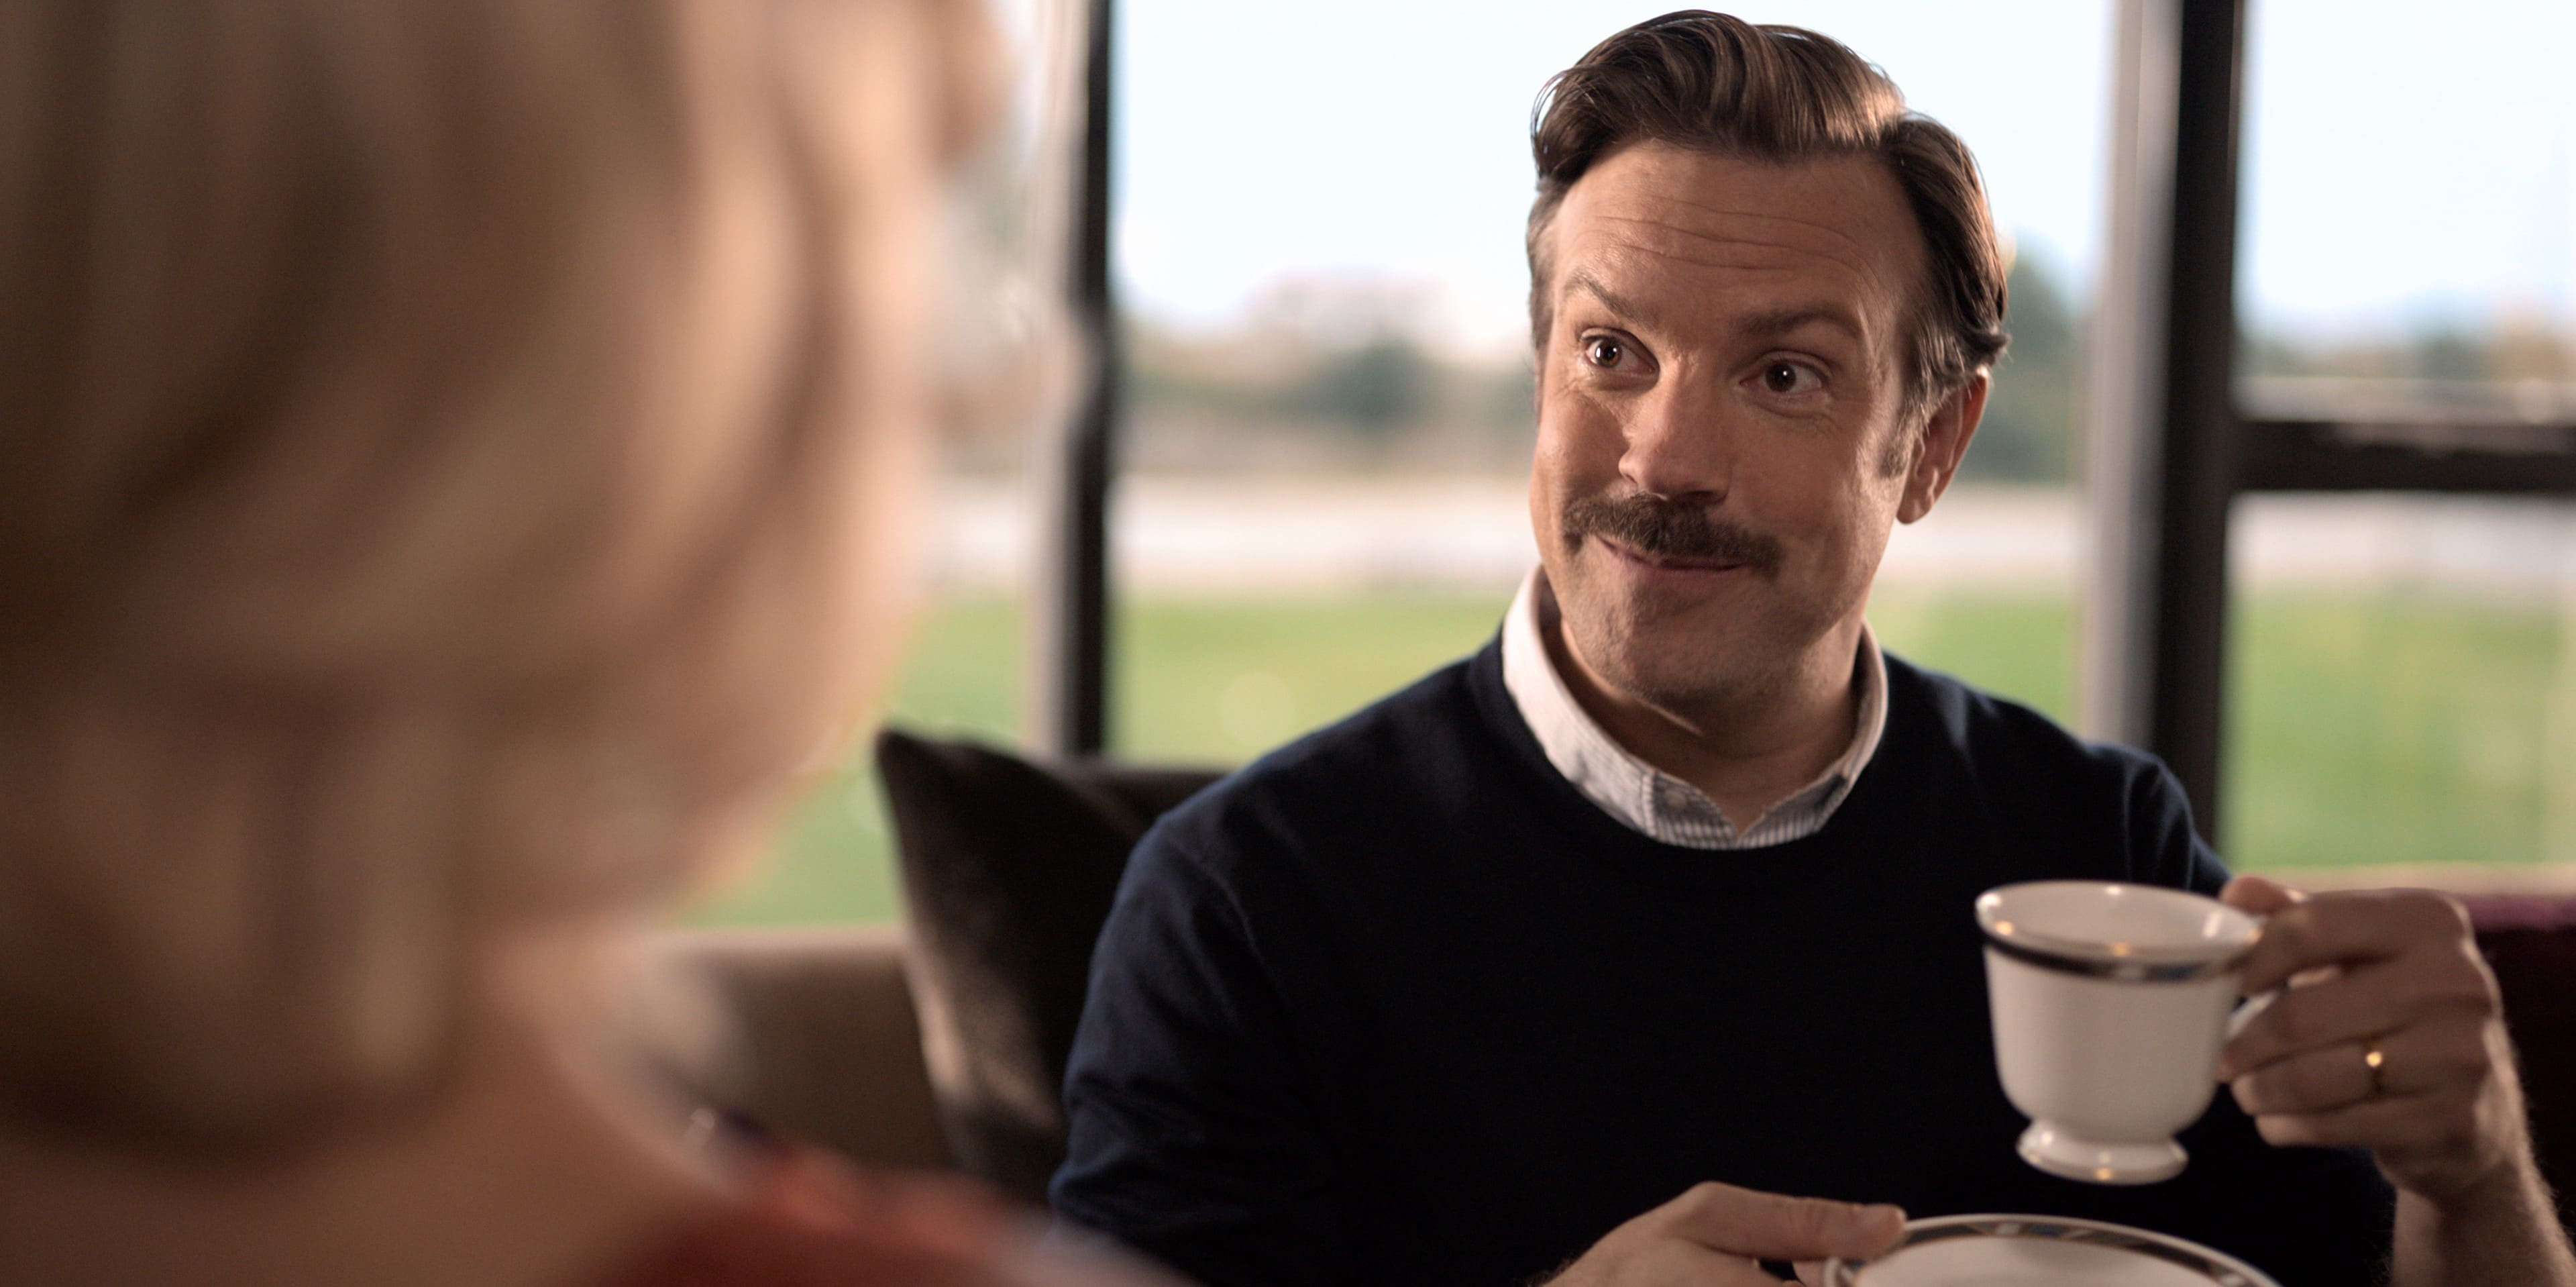 Score! Ted Lasso's Jason Sudeikis takes home first Apple TV+ Golden Globes win